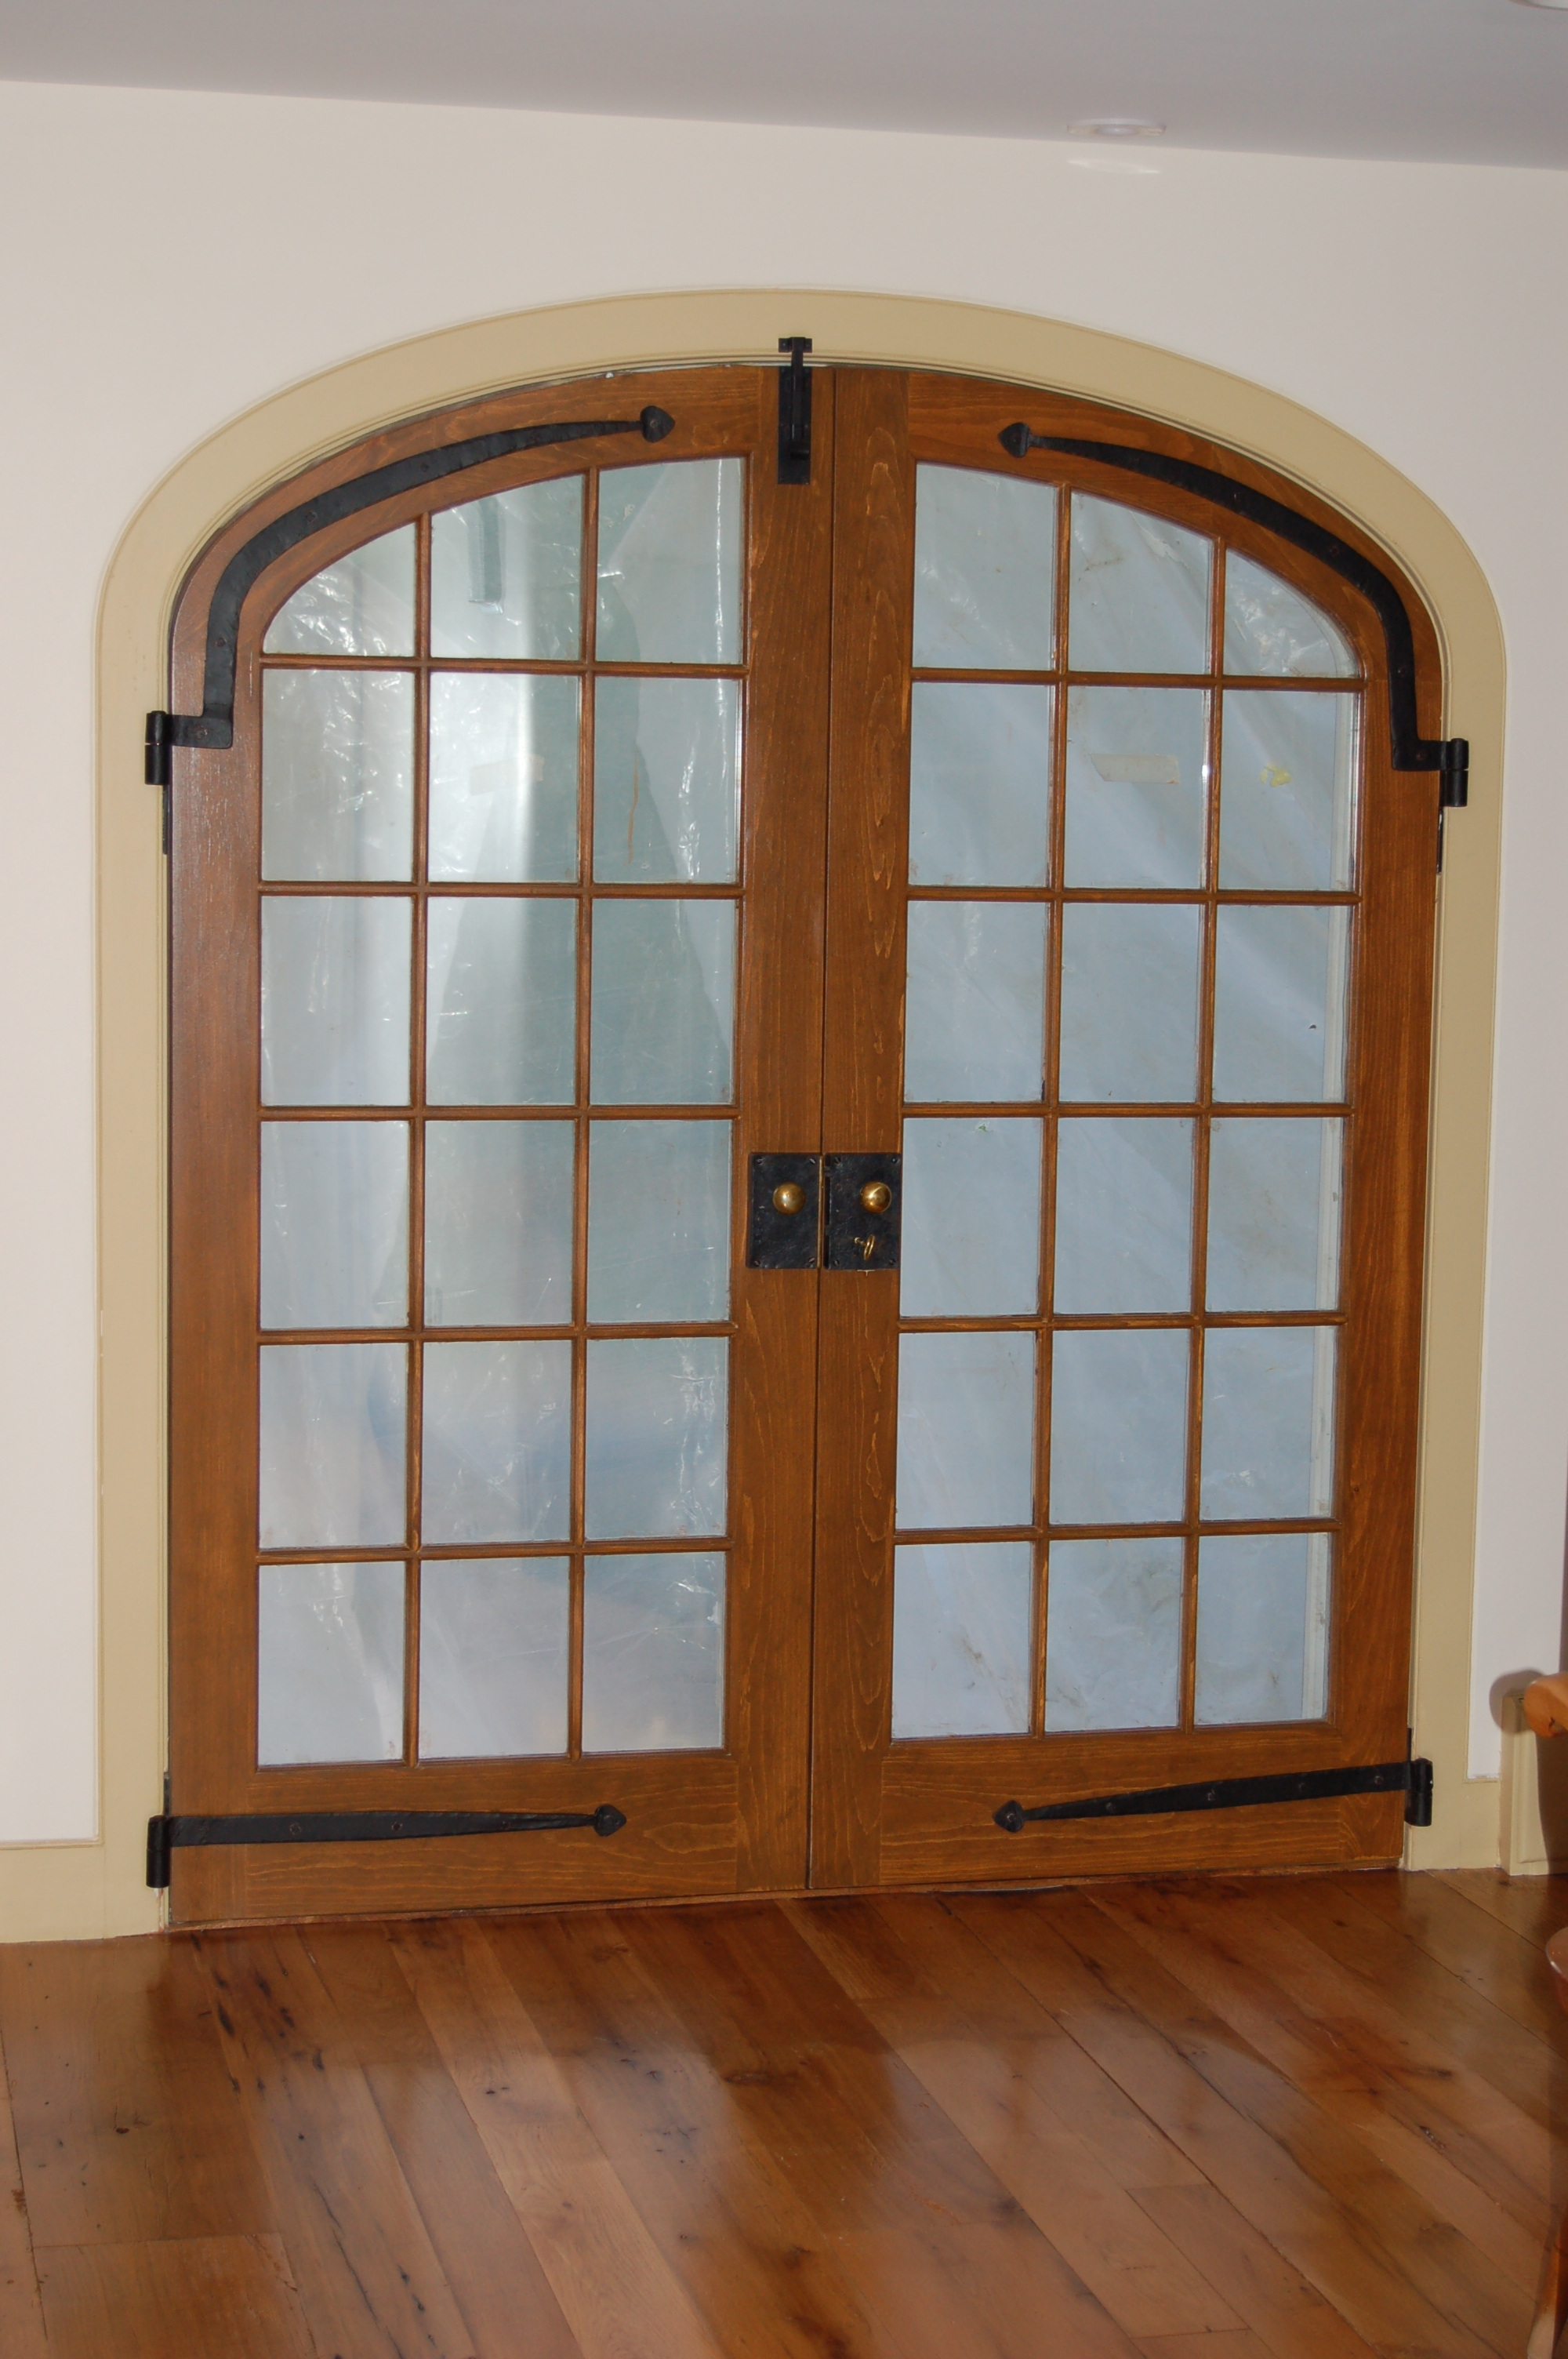 3008 #703E1C Elliptical Double Arch Top Exterior Door Unit Double Pane Insulated  image Arched Wood Entry Doors 40832000